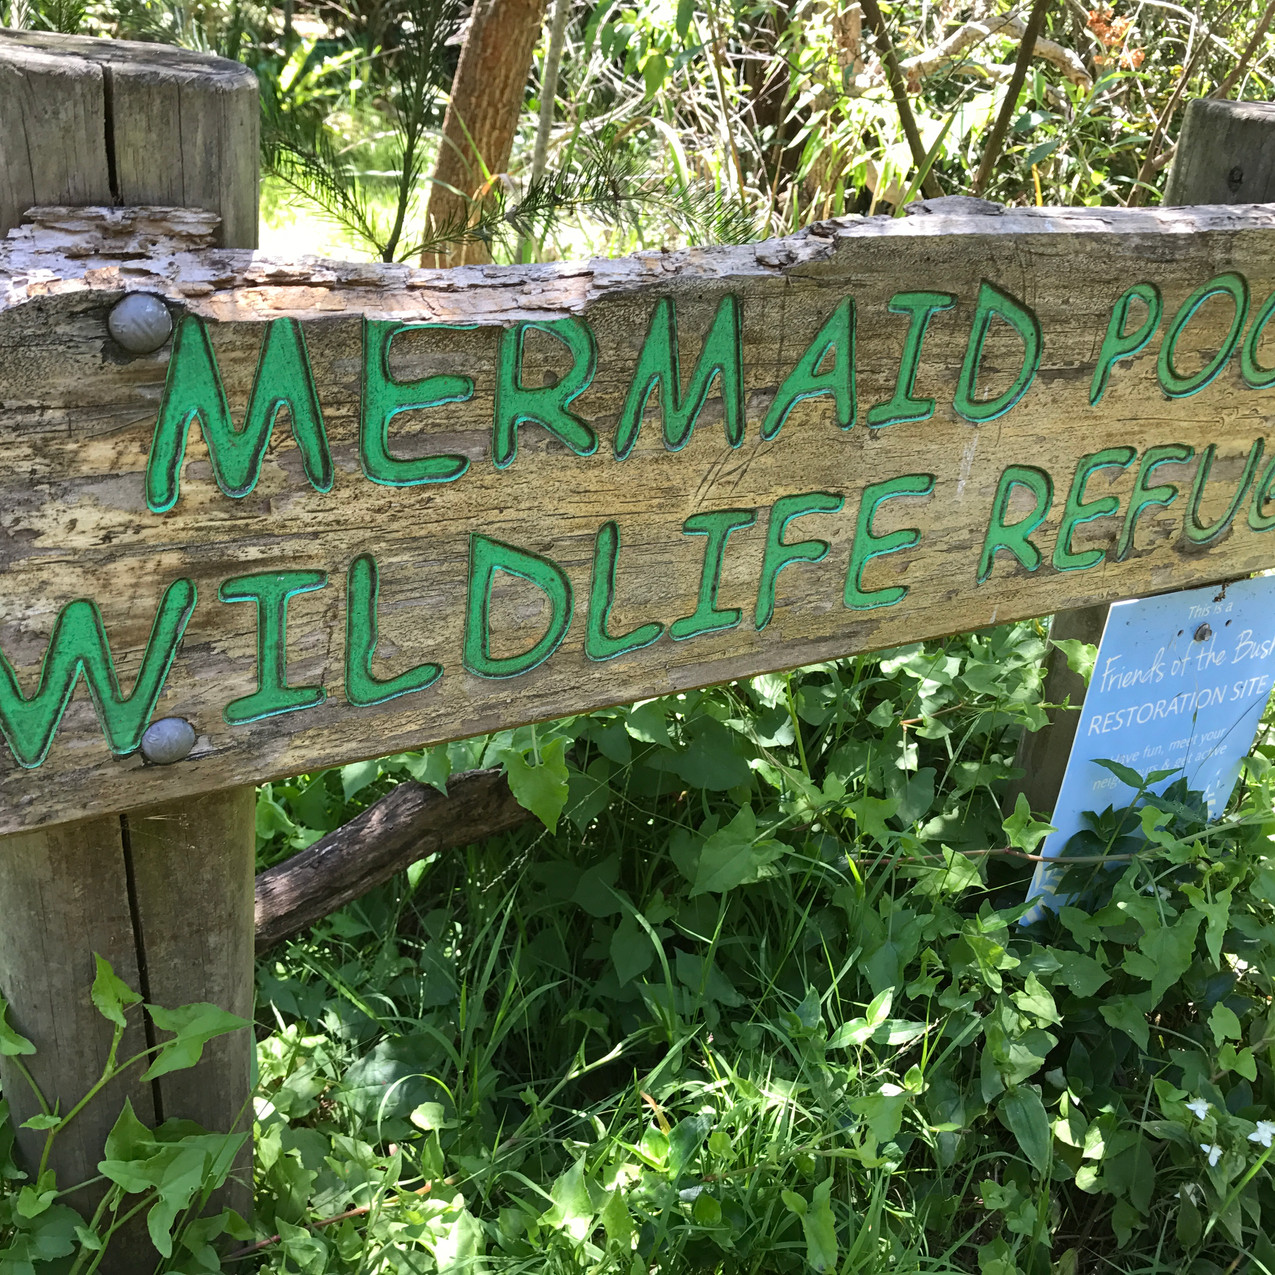 Mermaid Pools sign